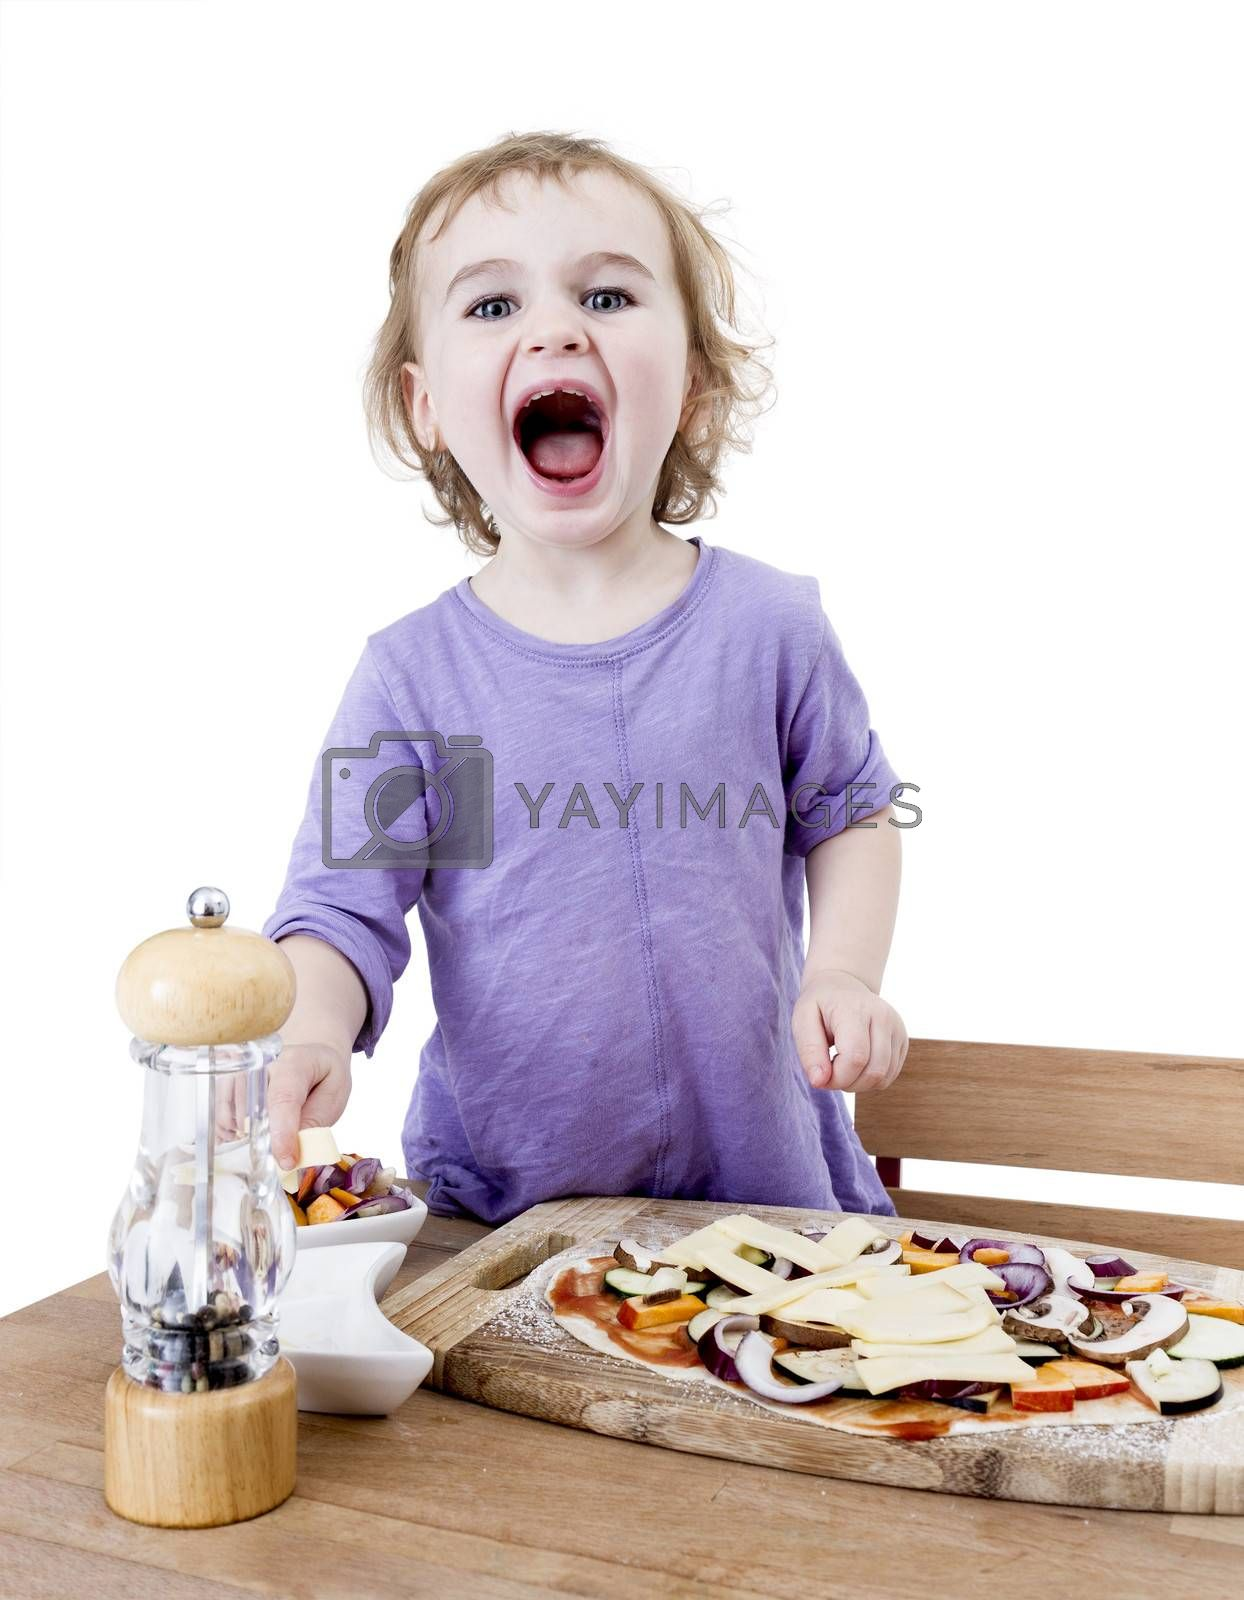 Royalty free image of screaming child making fresh pizza by gewoldi